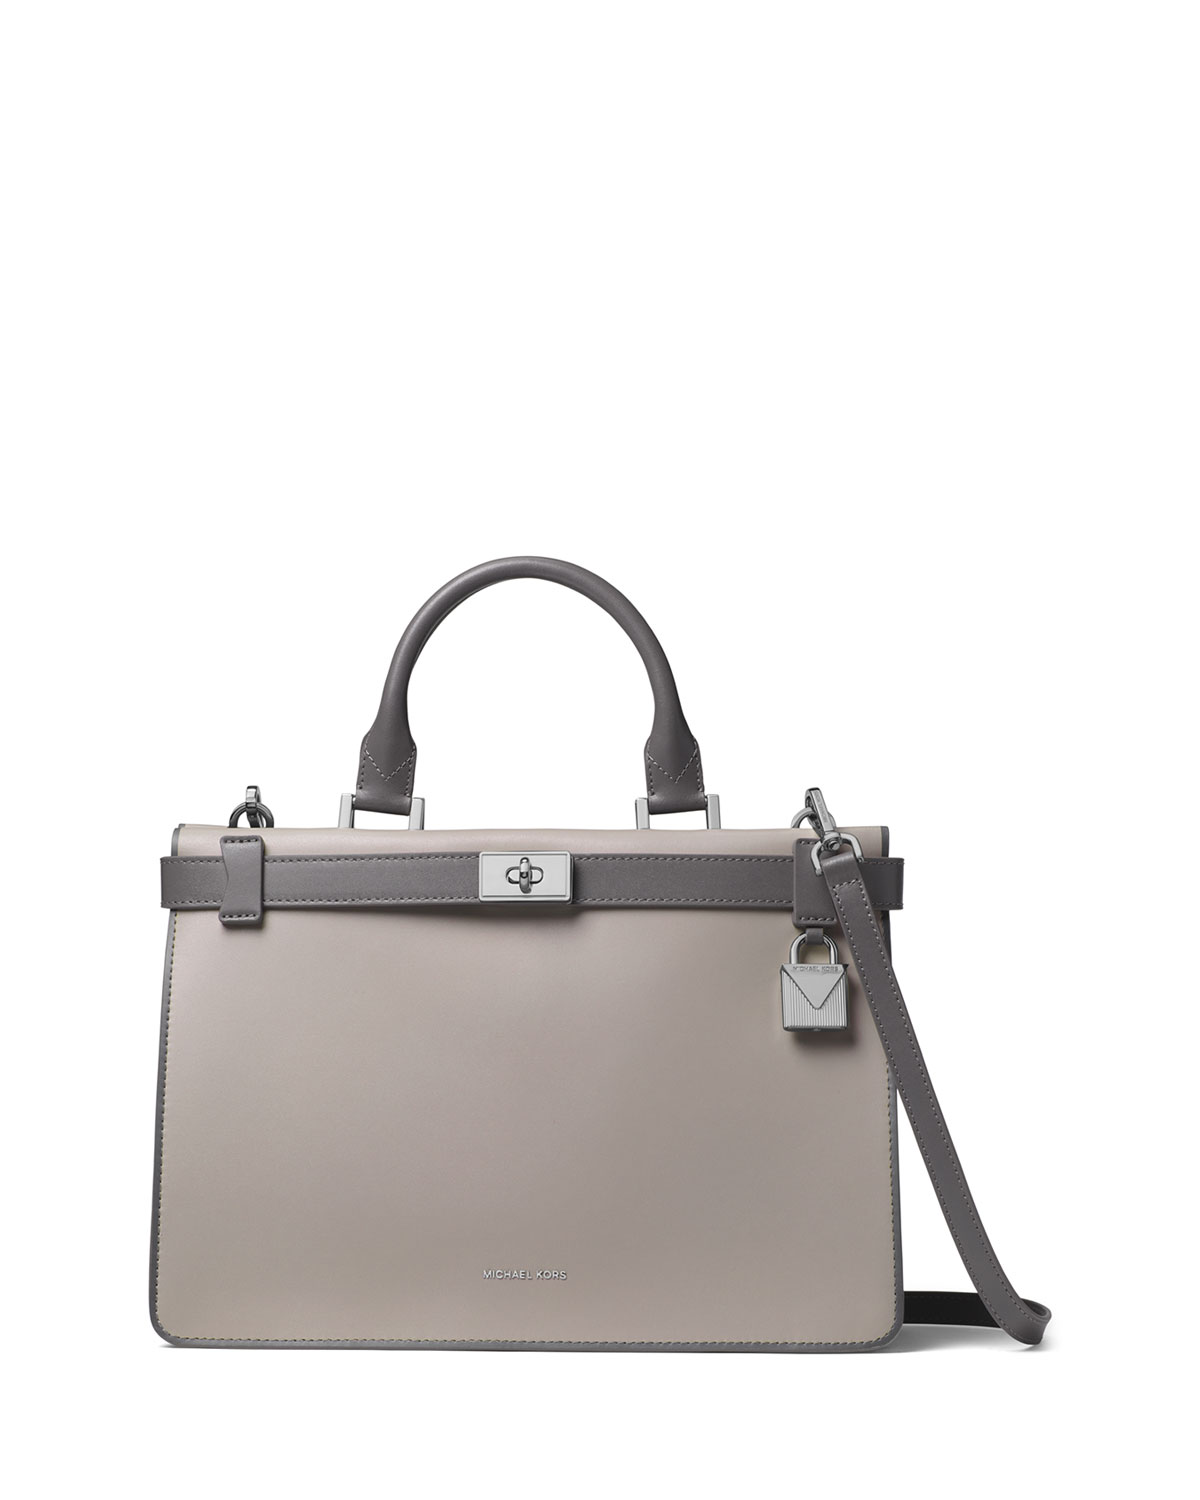 c4debac14ad2 MICHAEL Michael KorsTatiana Medium Leather Satchel Bag - Silvertone Hardware